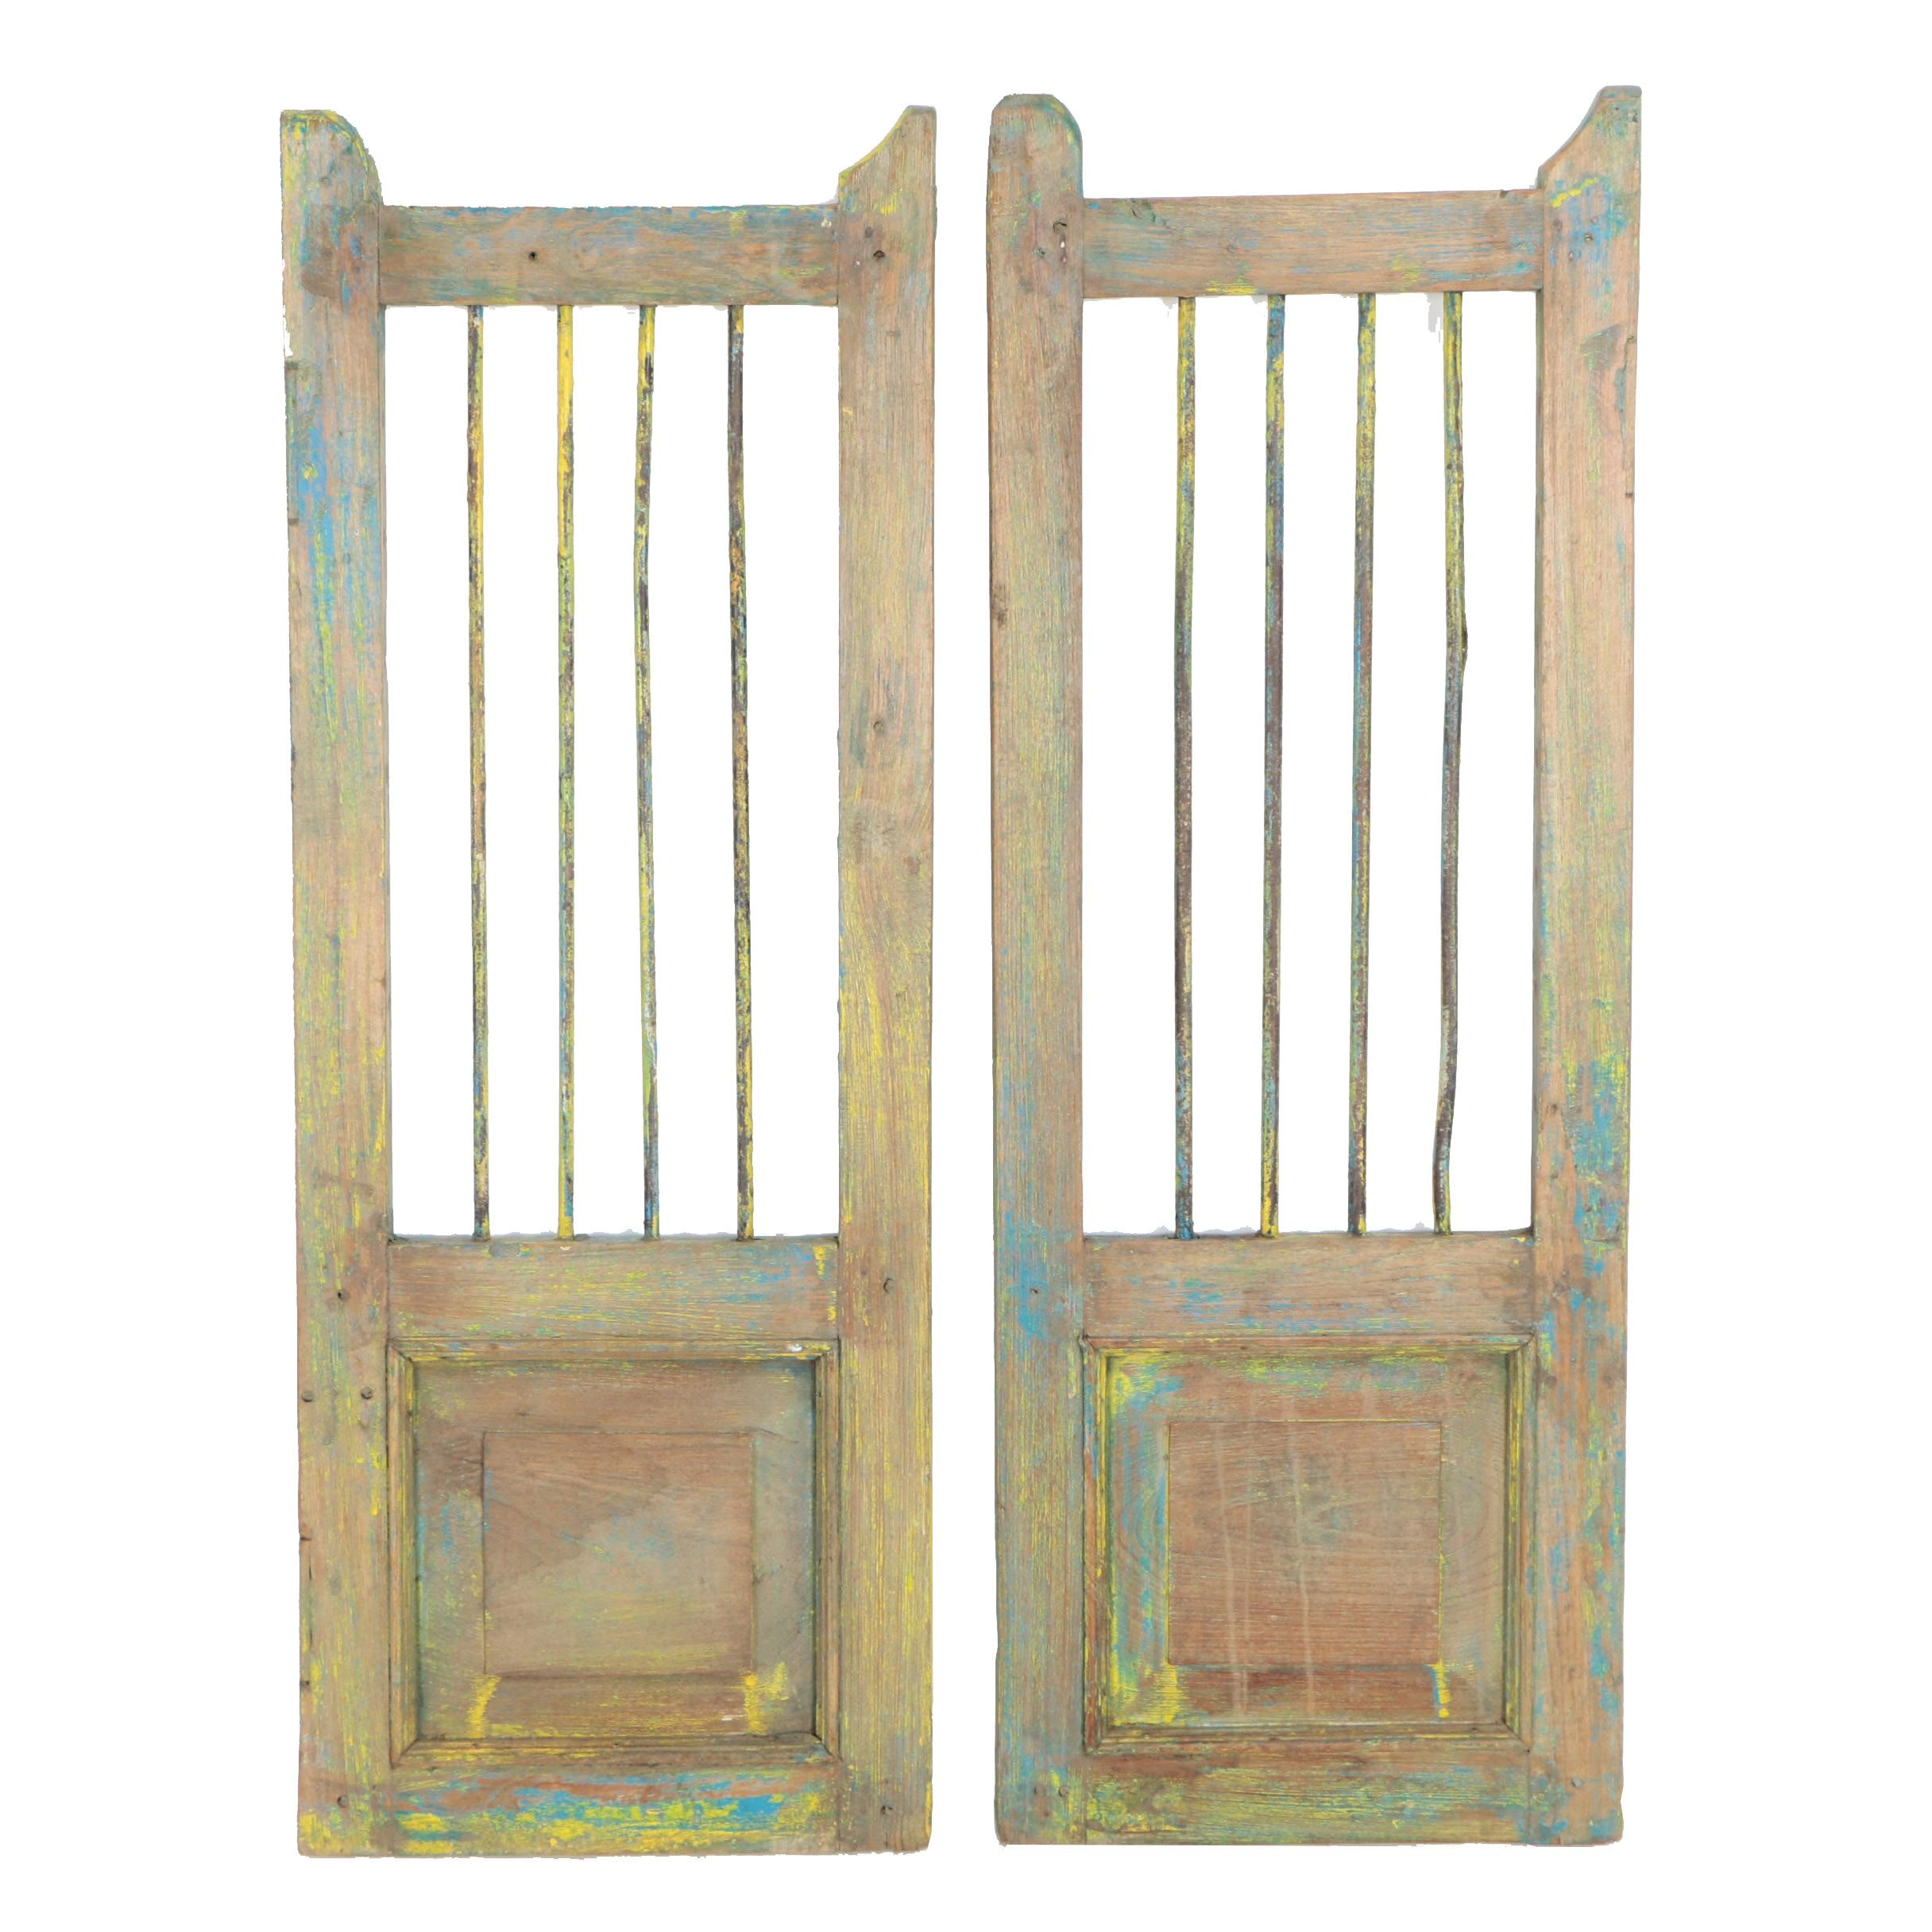 Vintage Barred Security Shutters